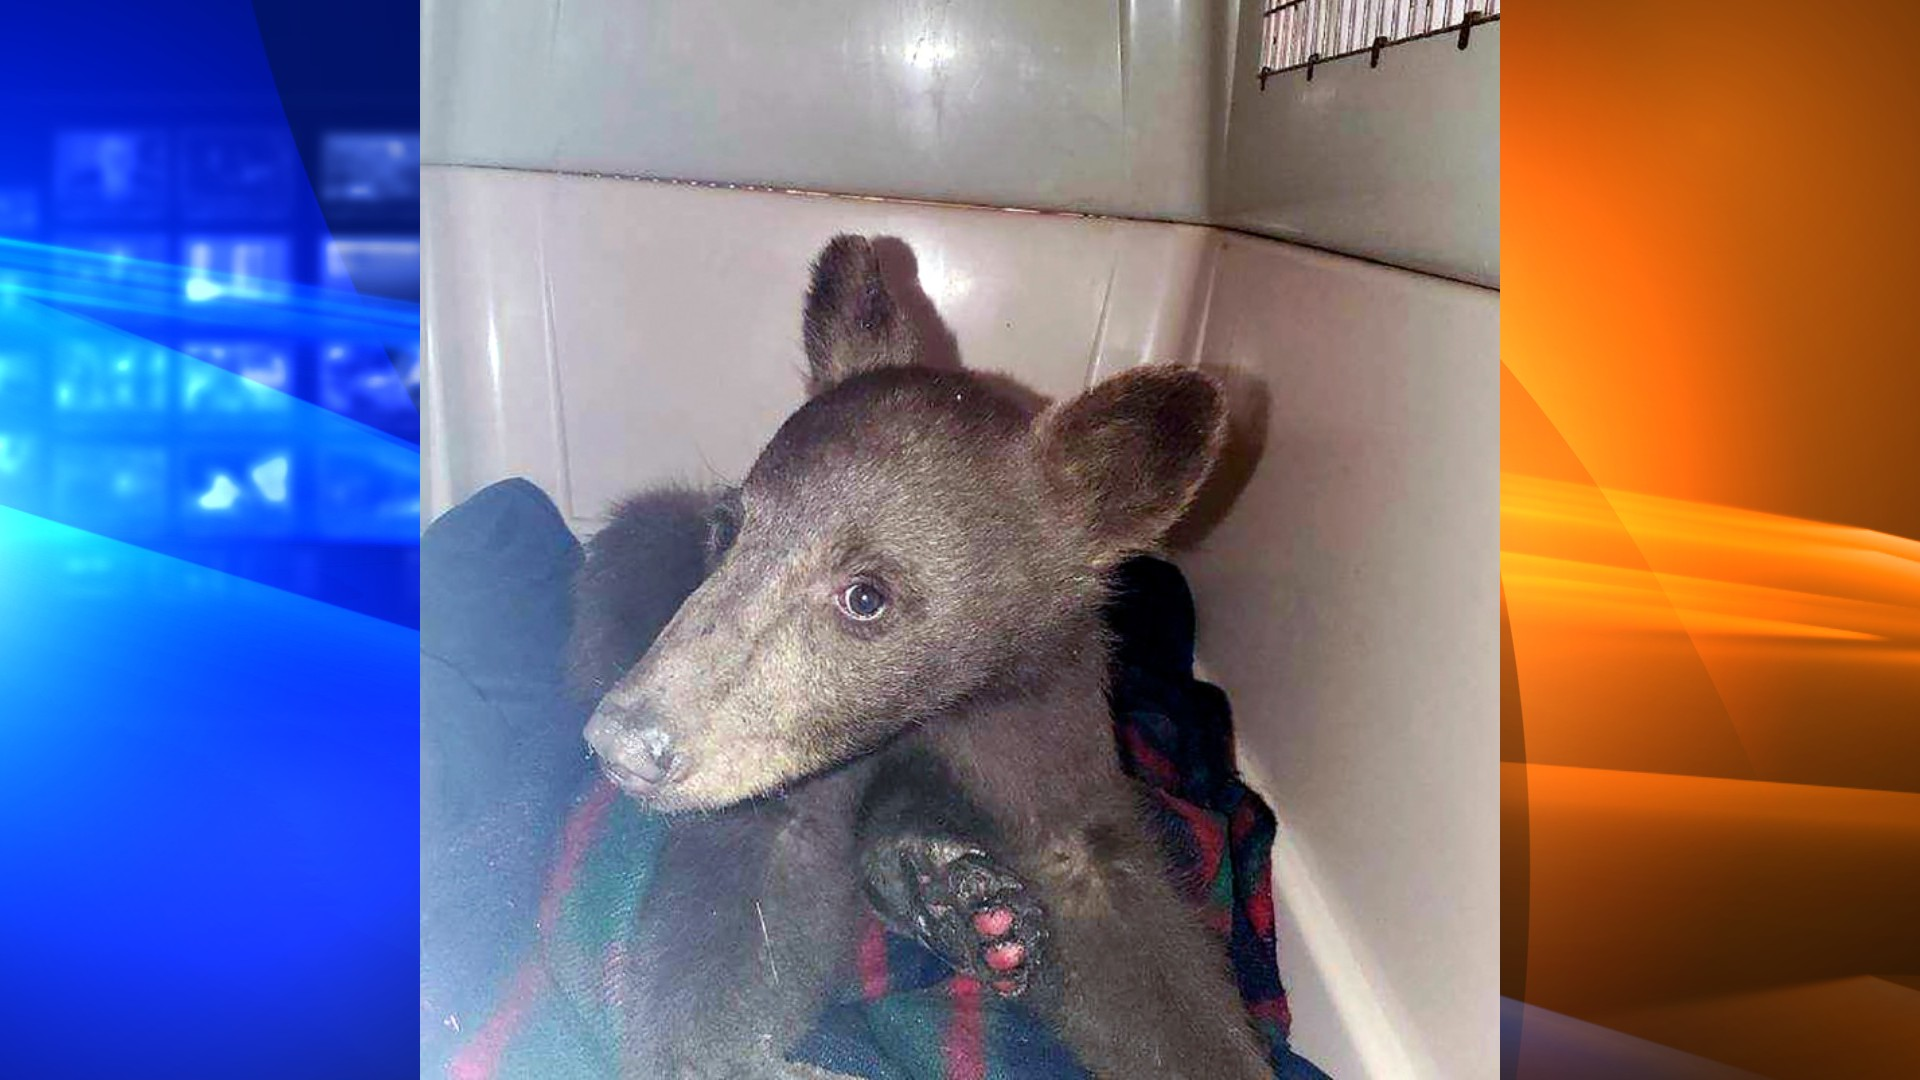 """In this July 25, 2021, photo provided by Lake Tahoe Wildlife Care is a bear cub that was taken in for treatment after it suffered burns in a California wildfire, to Lake Tahoe Wildlife Care in South Lake Tahoe, Calif. The staff at the care center has named him """"Tamarack"""" after the fire that burned through the Sierra south of Tahoe and into Nevada. They say he was underweight and dehydrated, but otherwise doing well. (Lake Tahoe Wildlife Care via AP)"""